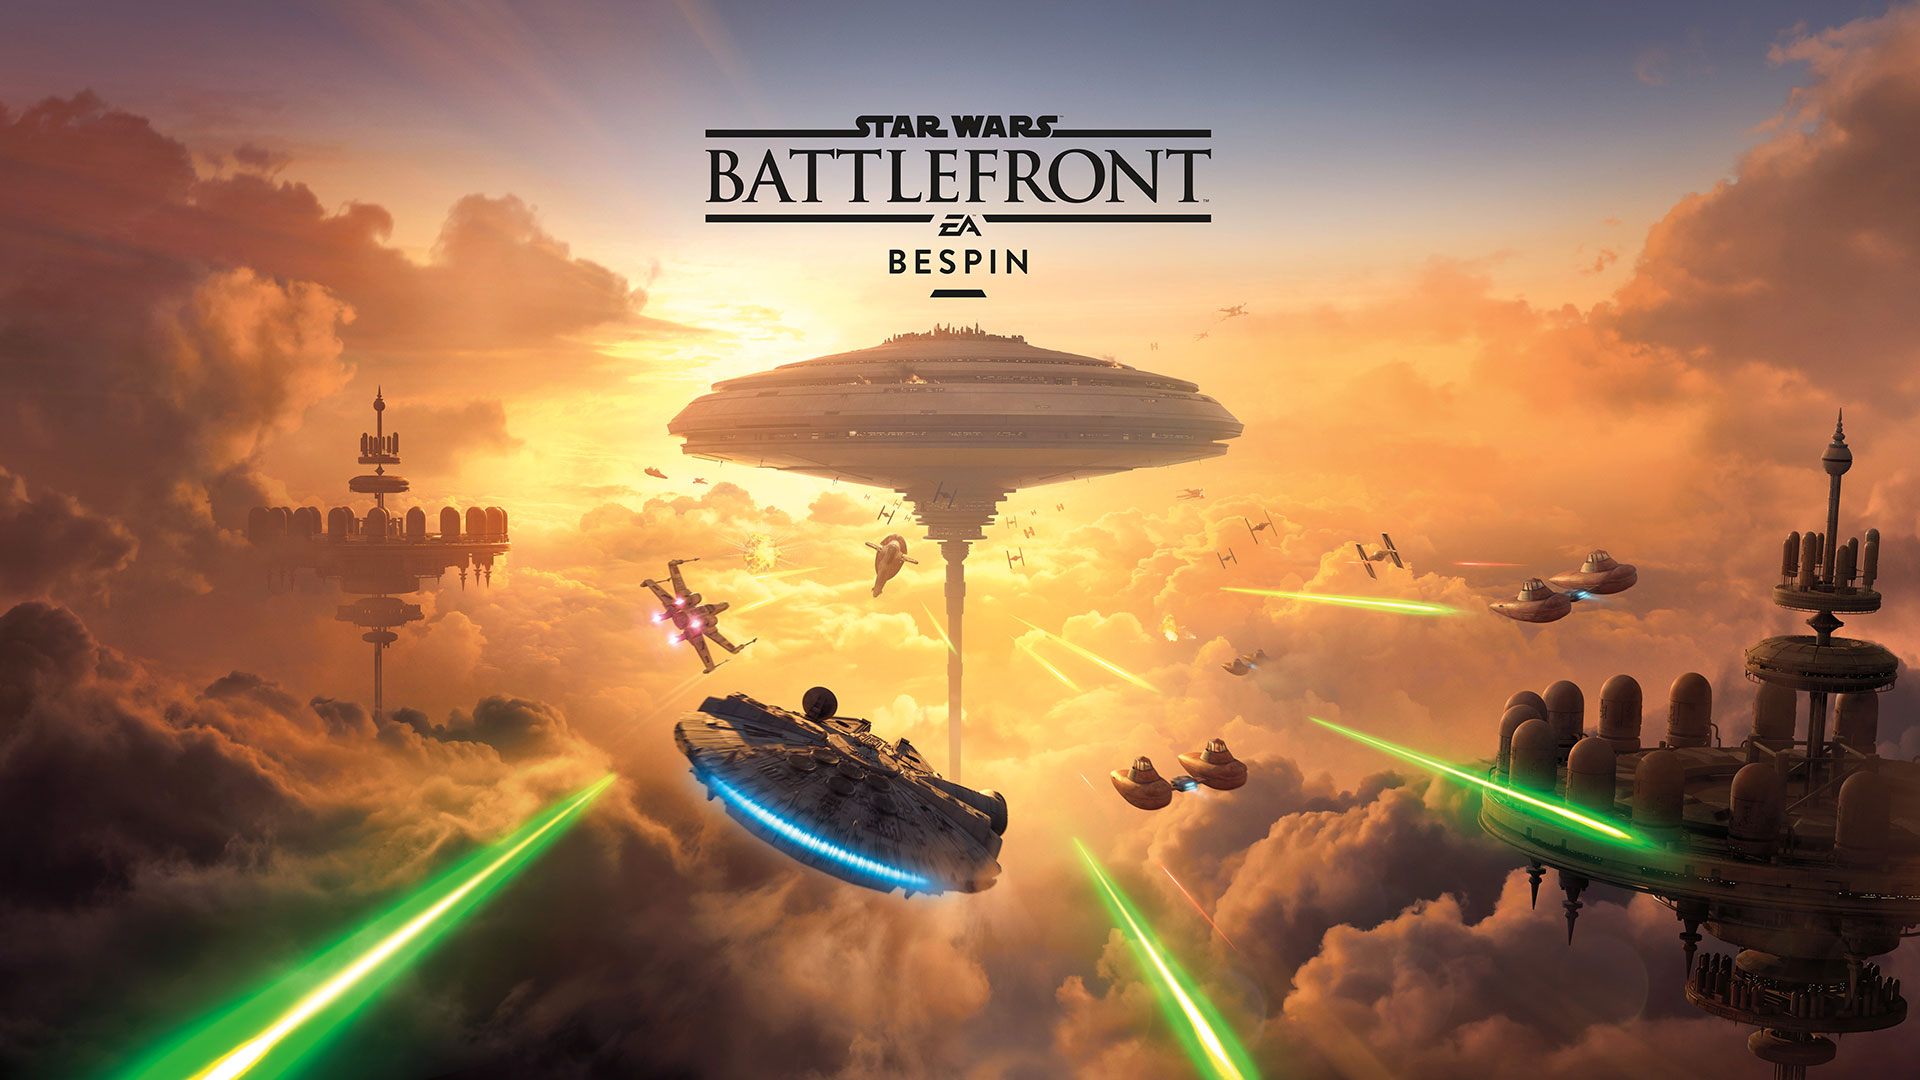 Star Wars Battlefront Bespin Expansion Pack Trailer